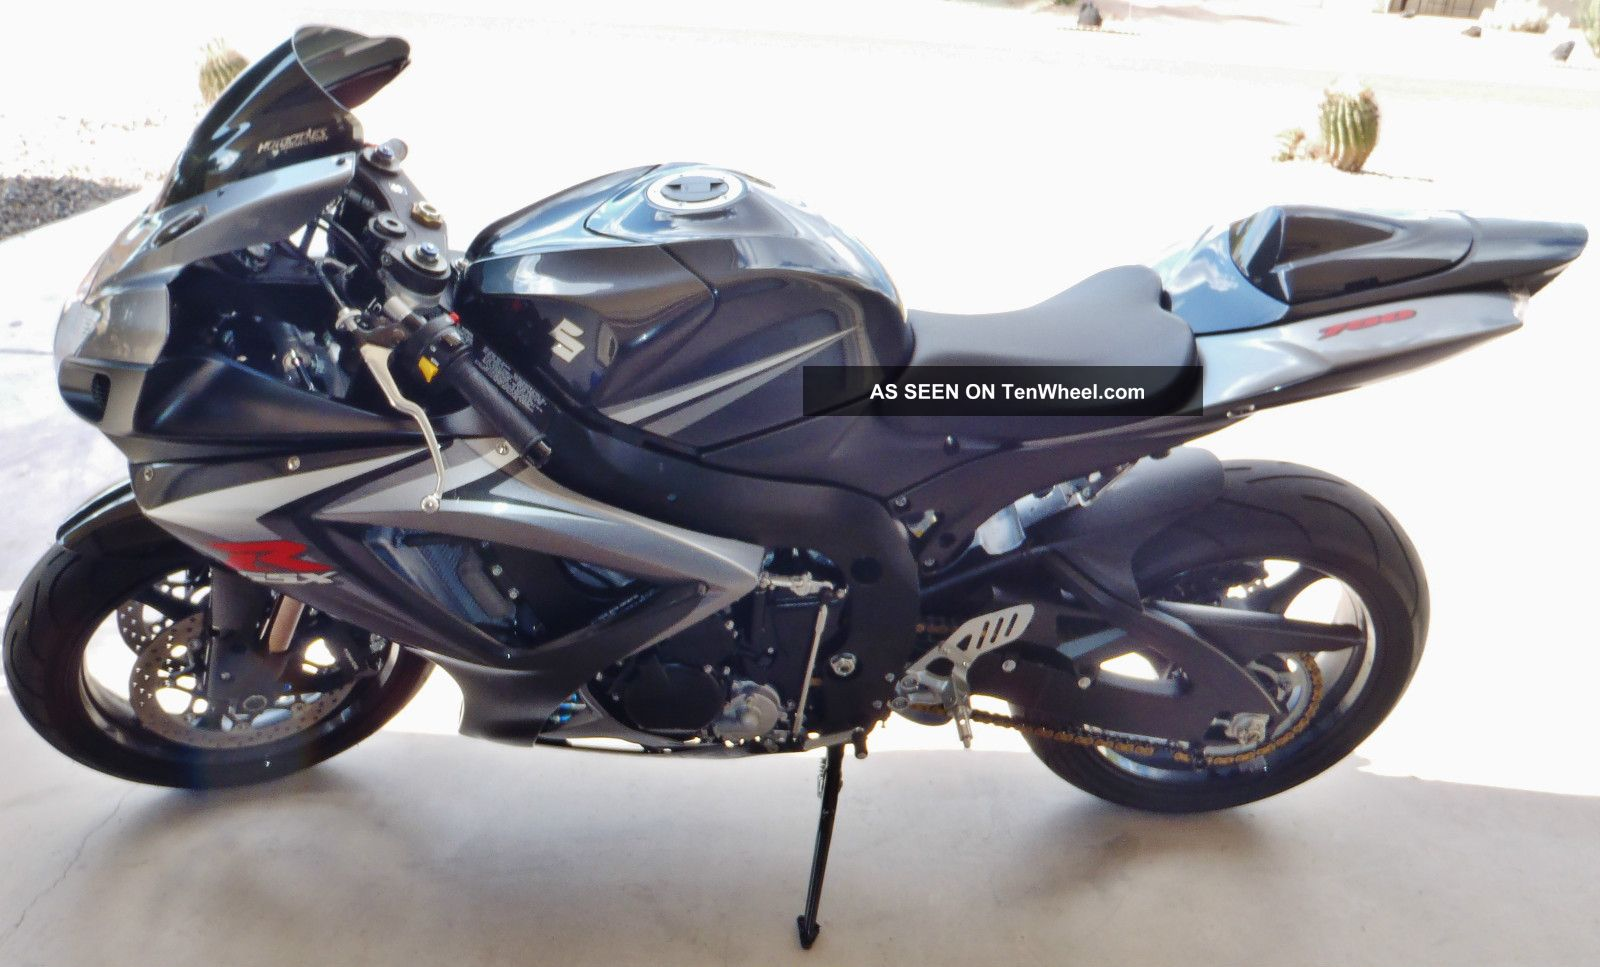 2007 Gsxr 750 - Gixxer That ' S Balanced,  Smooth + Gets Up And Goes GSX-R photo